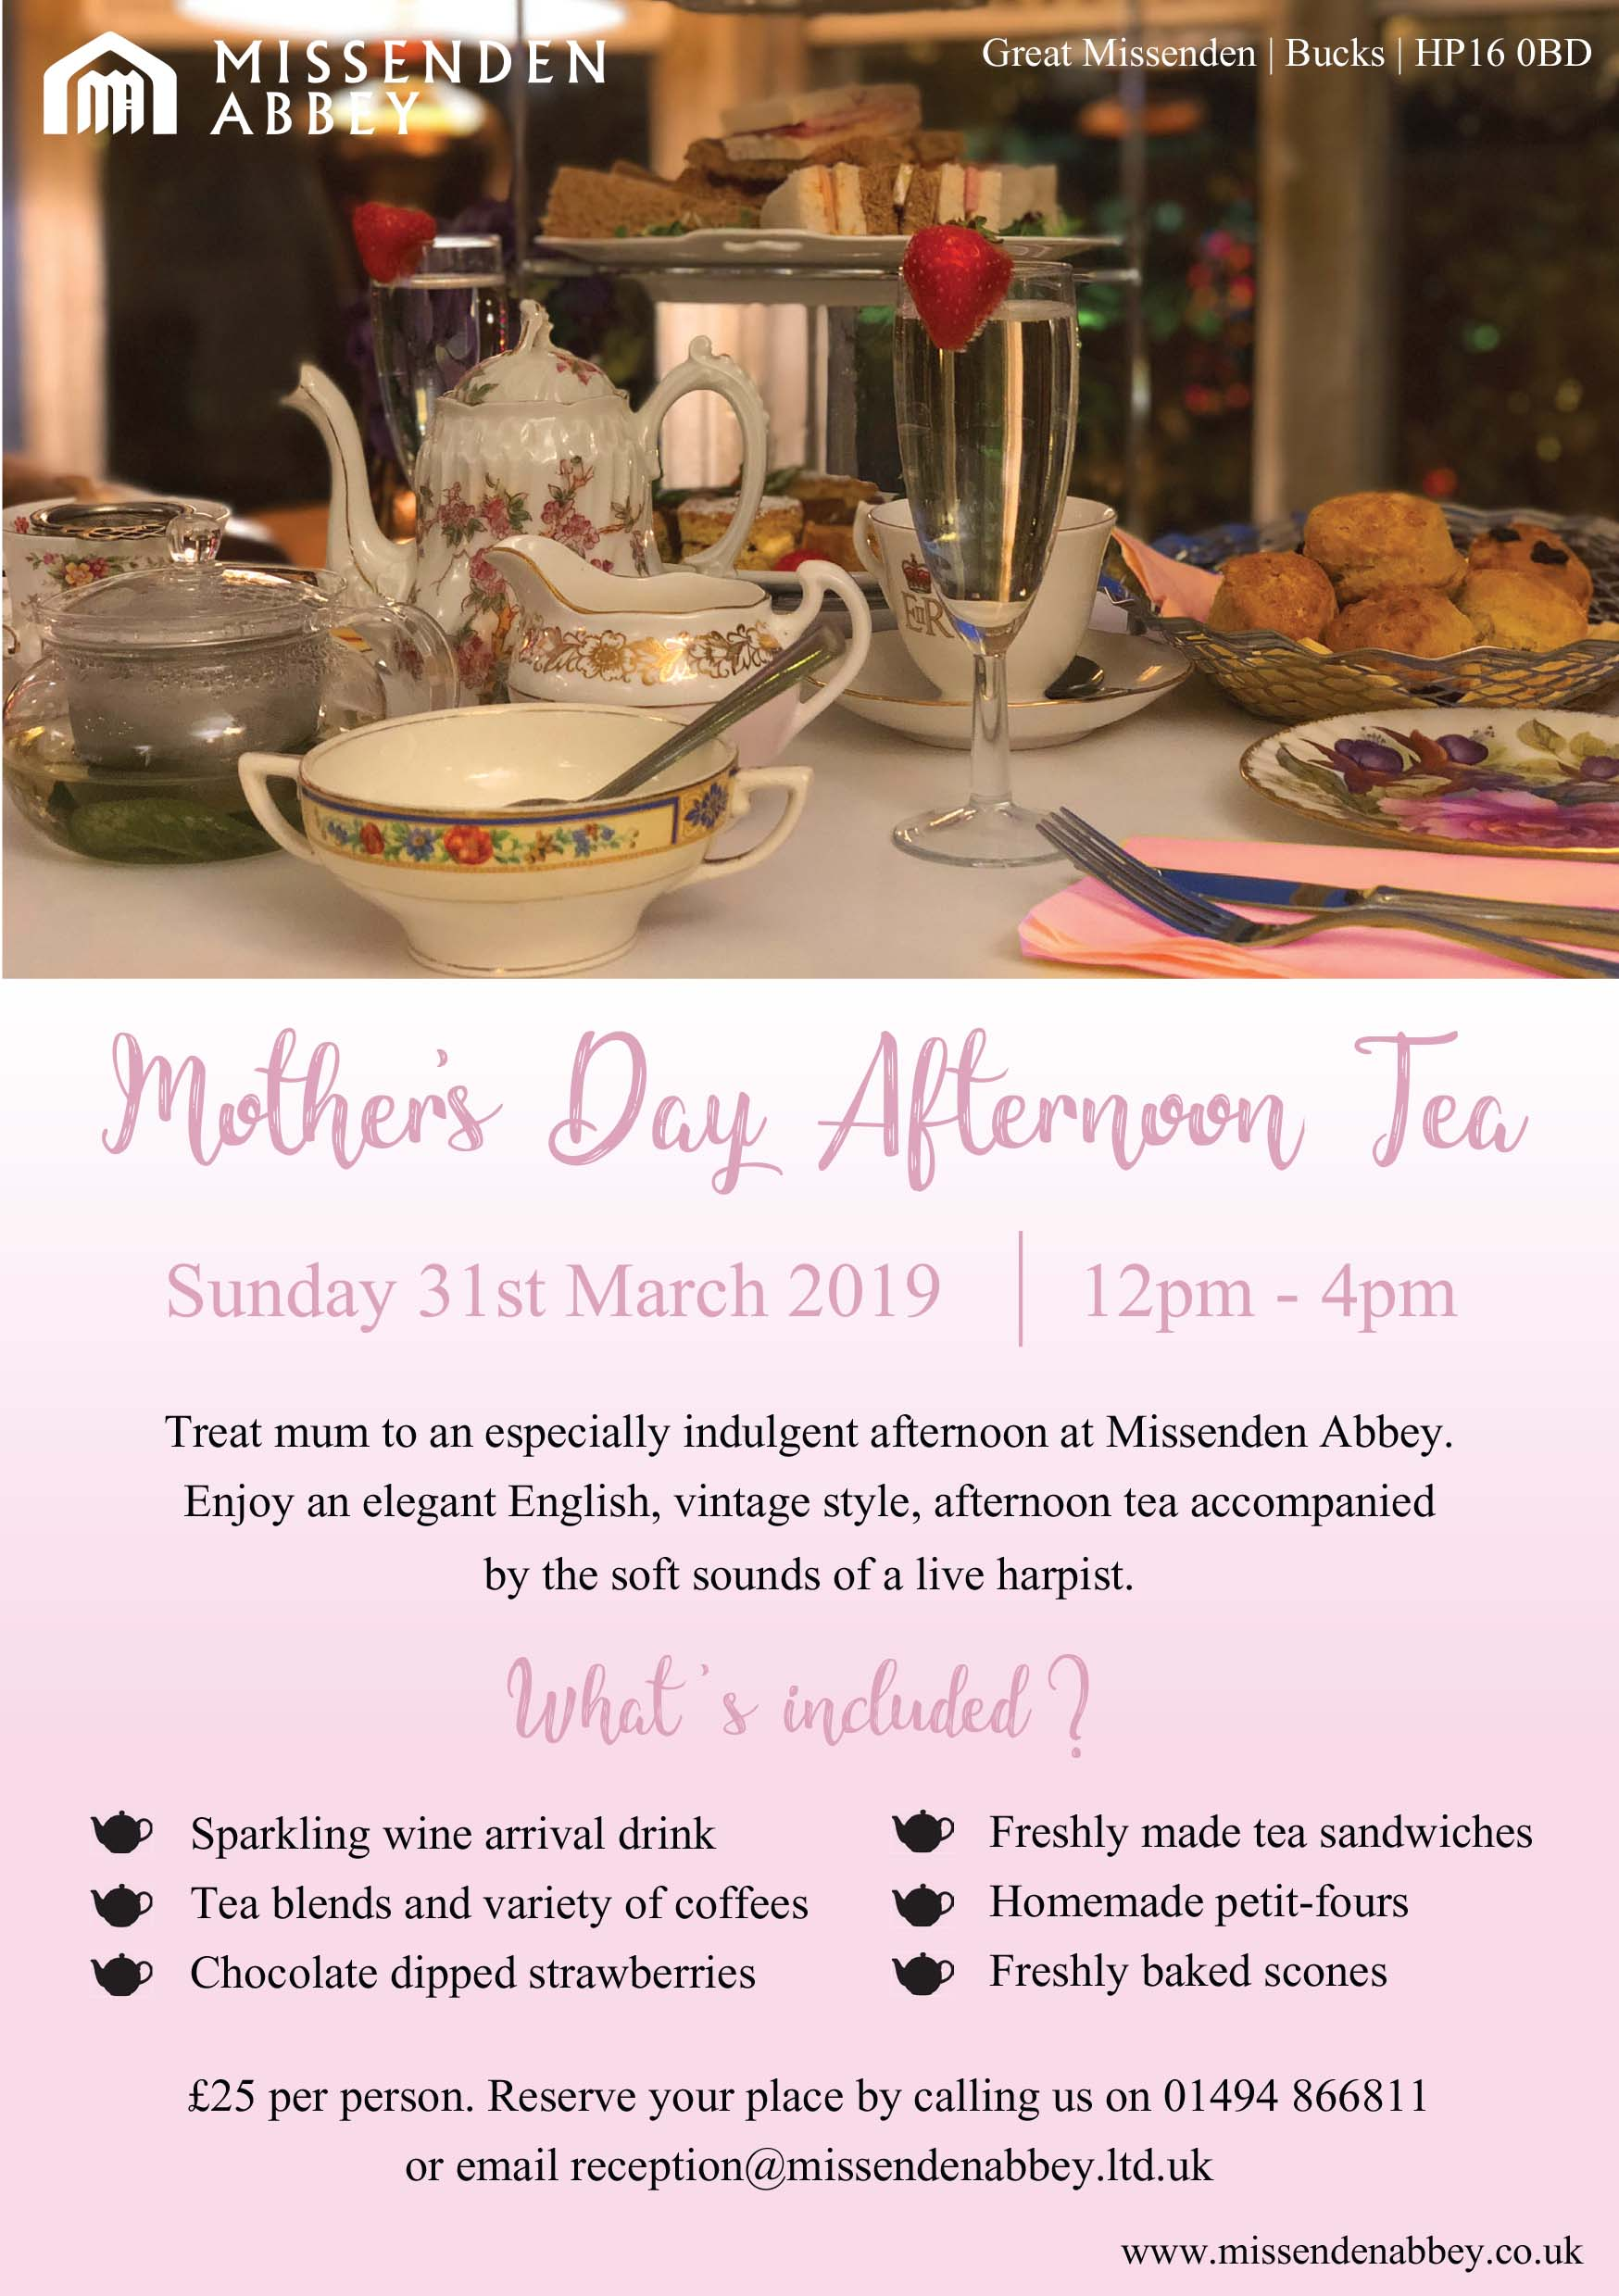 Missenden Abbey Mother's Day Afternoon Tea